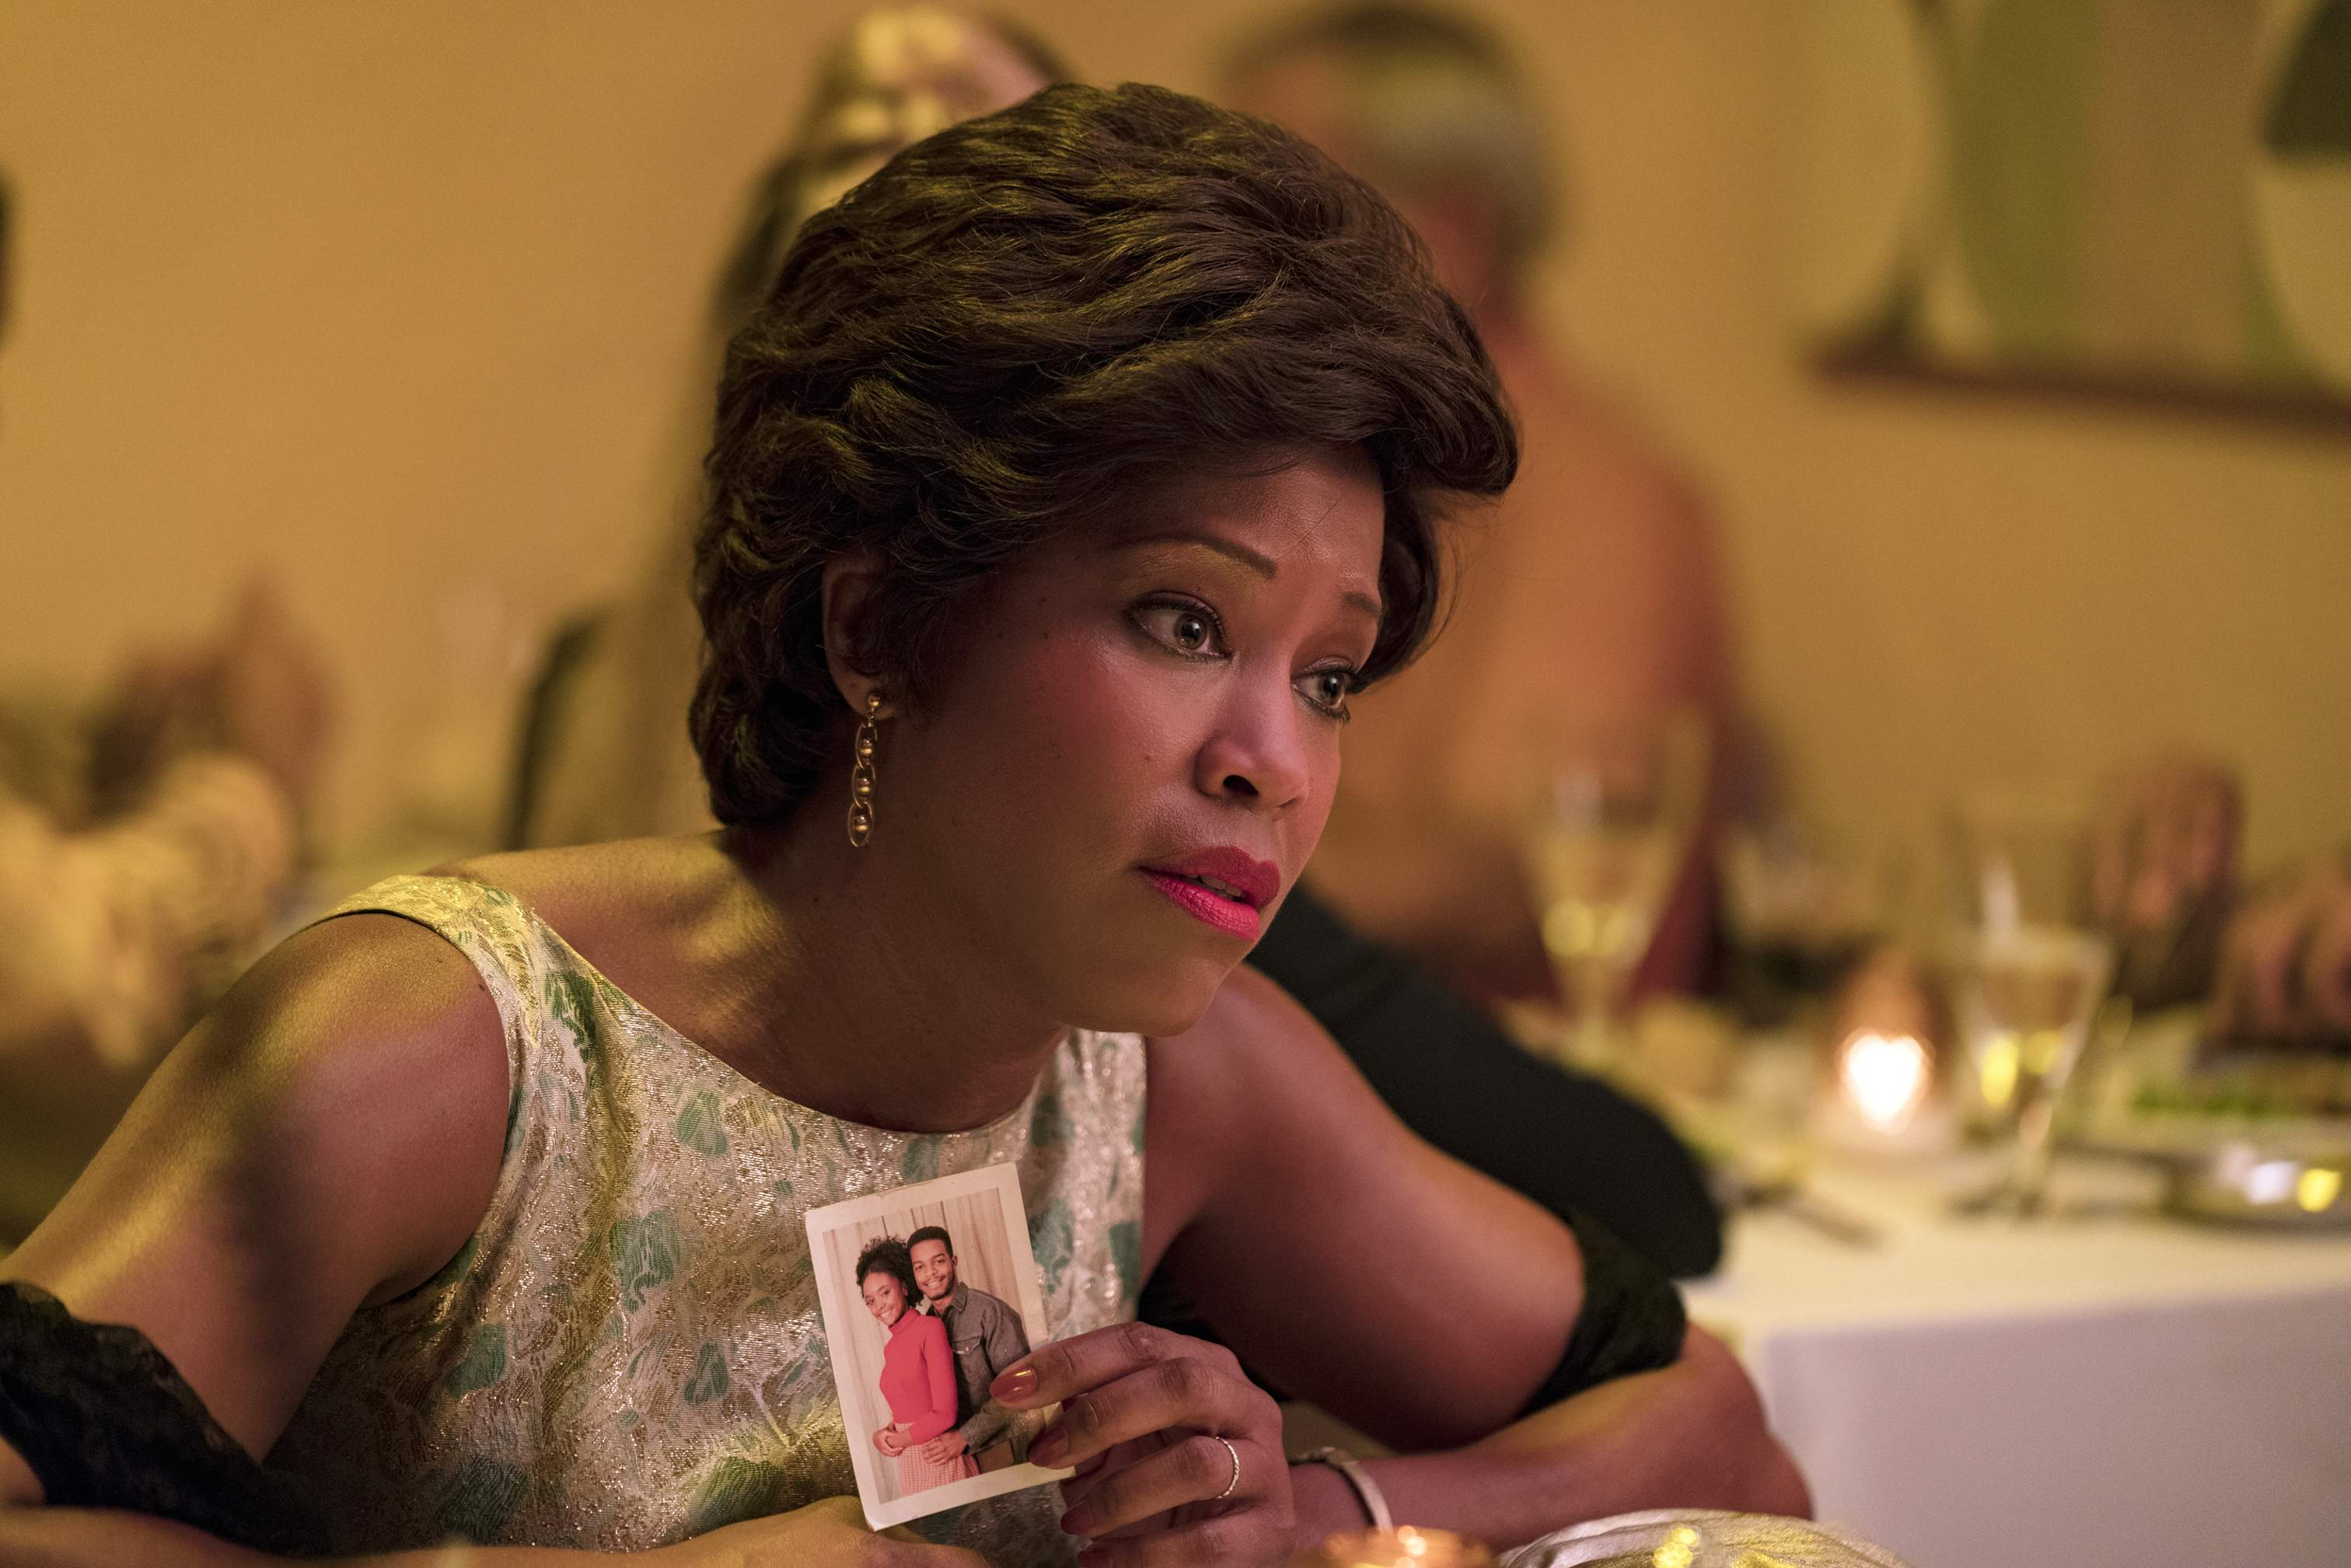 Regina King looks likely to claim a Best Supporting Actress Oscar for her role in 'If Beale Street Could Talk.'